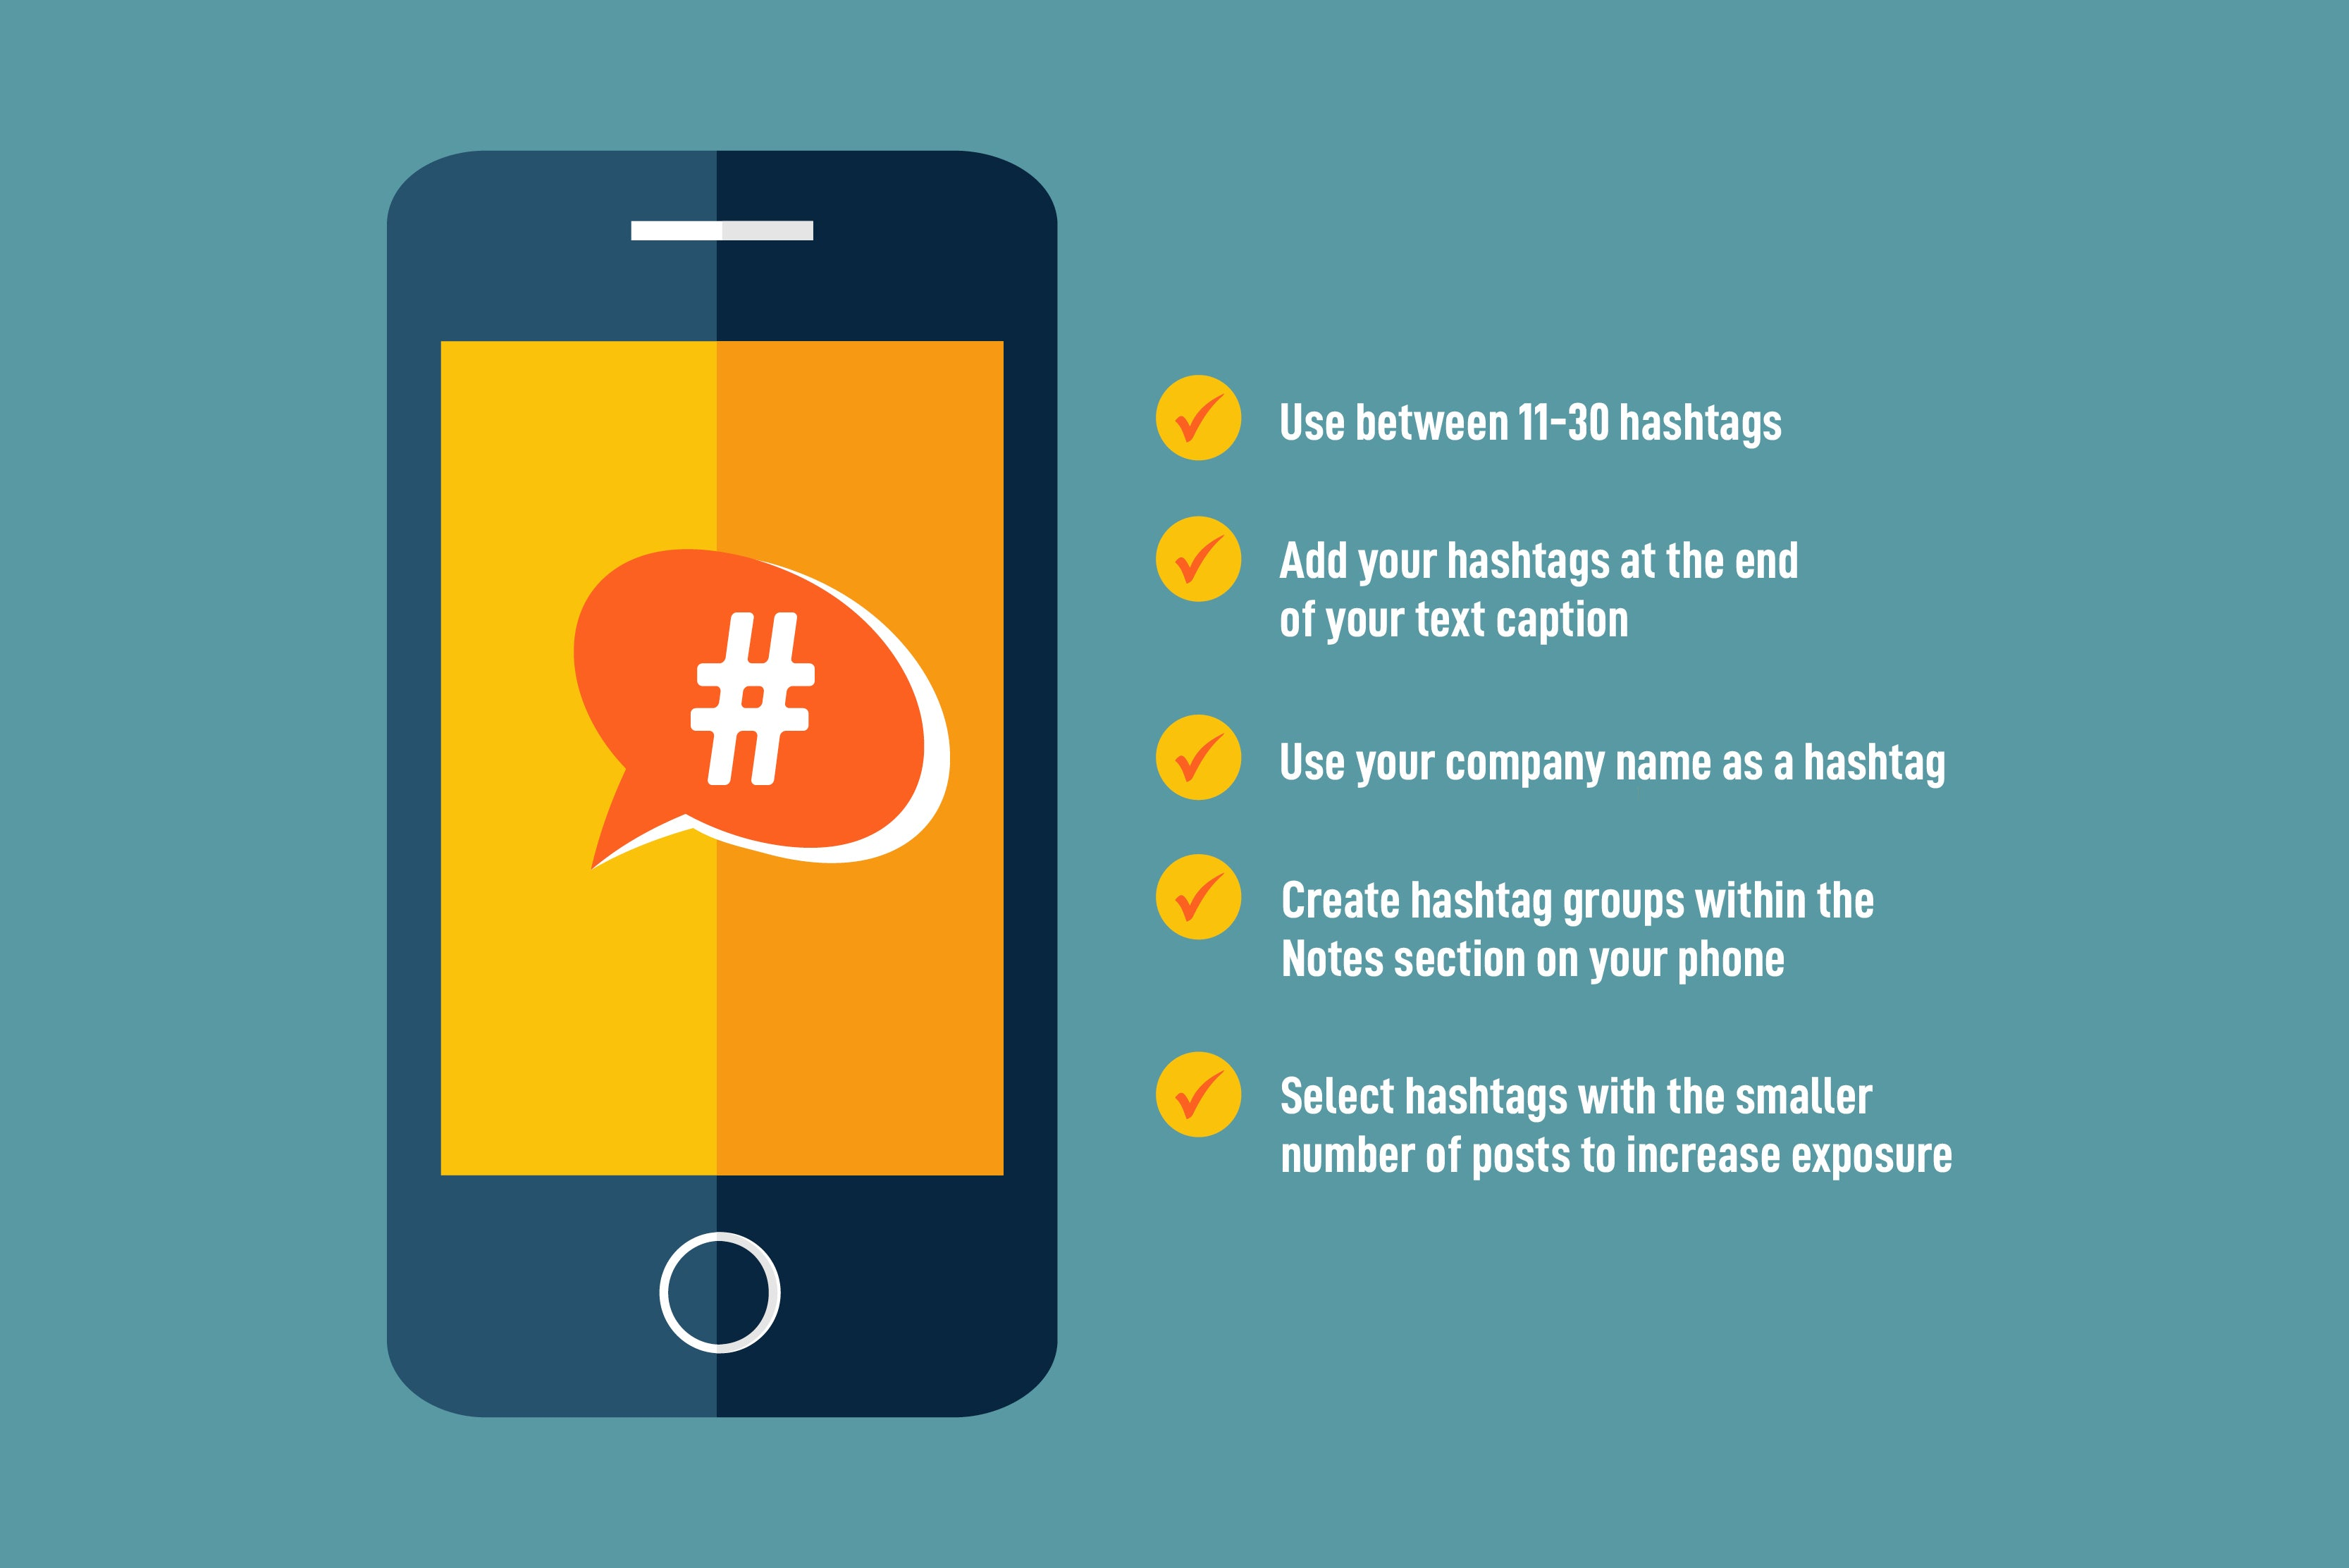 hashtag-on-instagram-tips-infographic